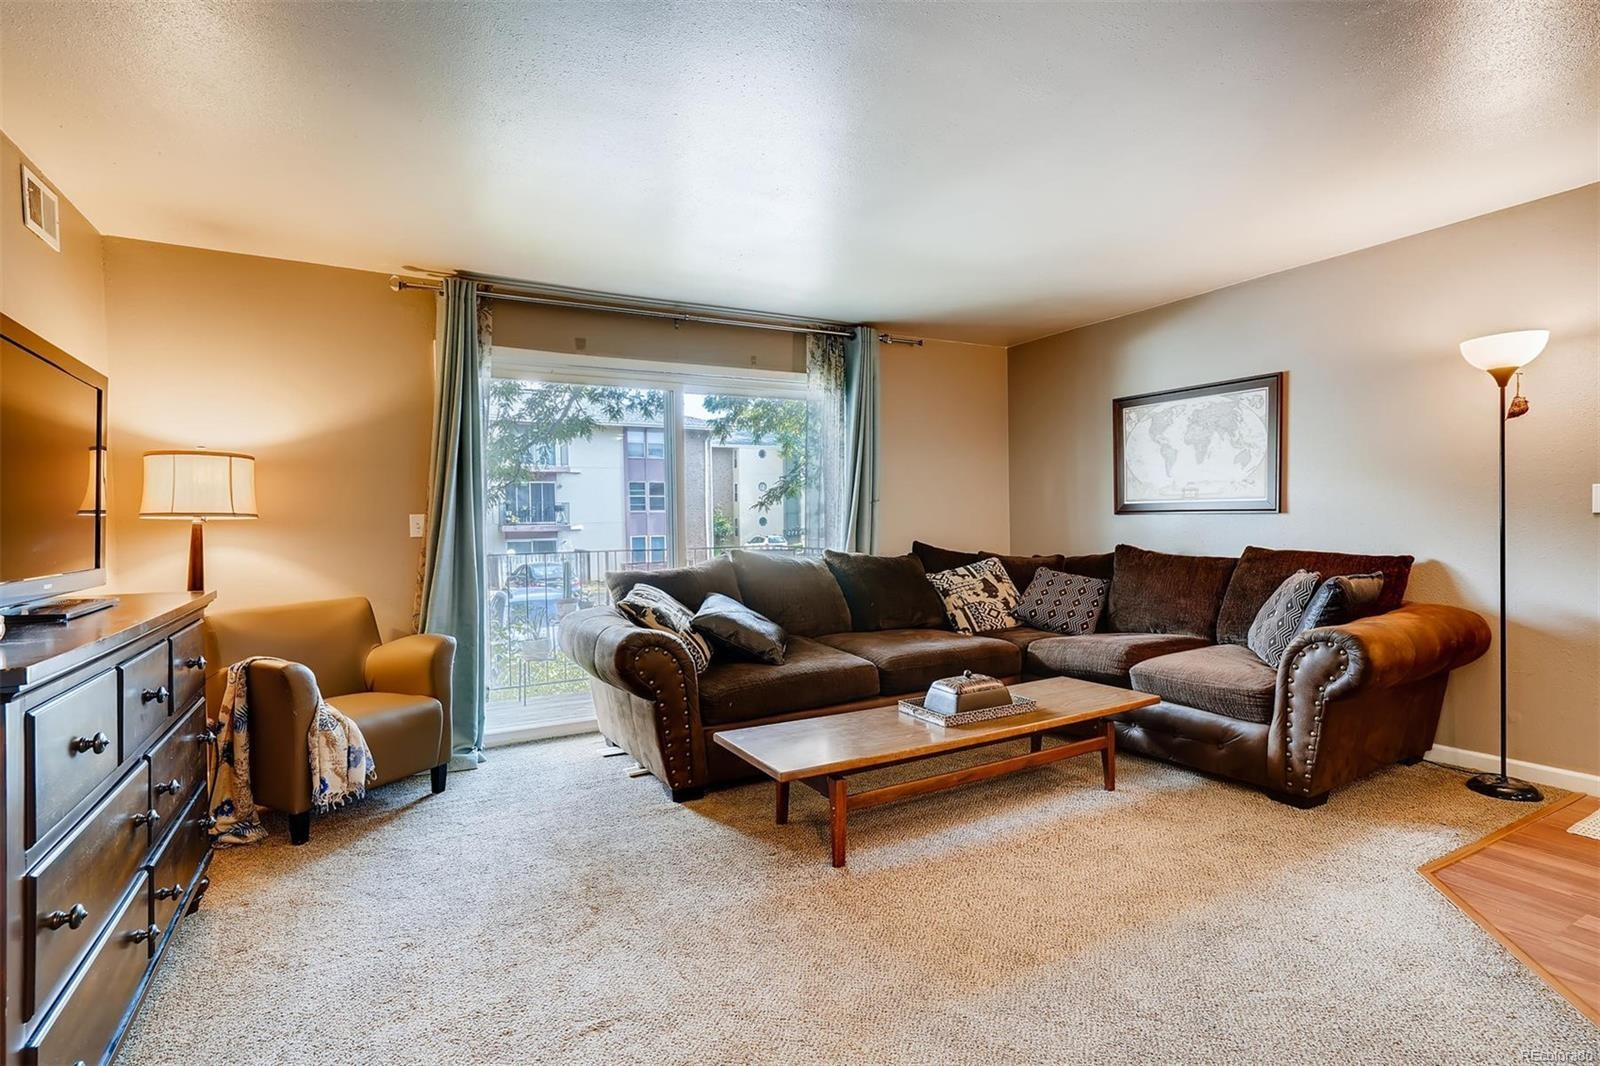 MLS# 5115362 - 1 - 12142  Melody Drive, Westminster, CO 80234